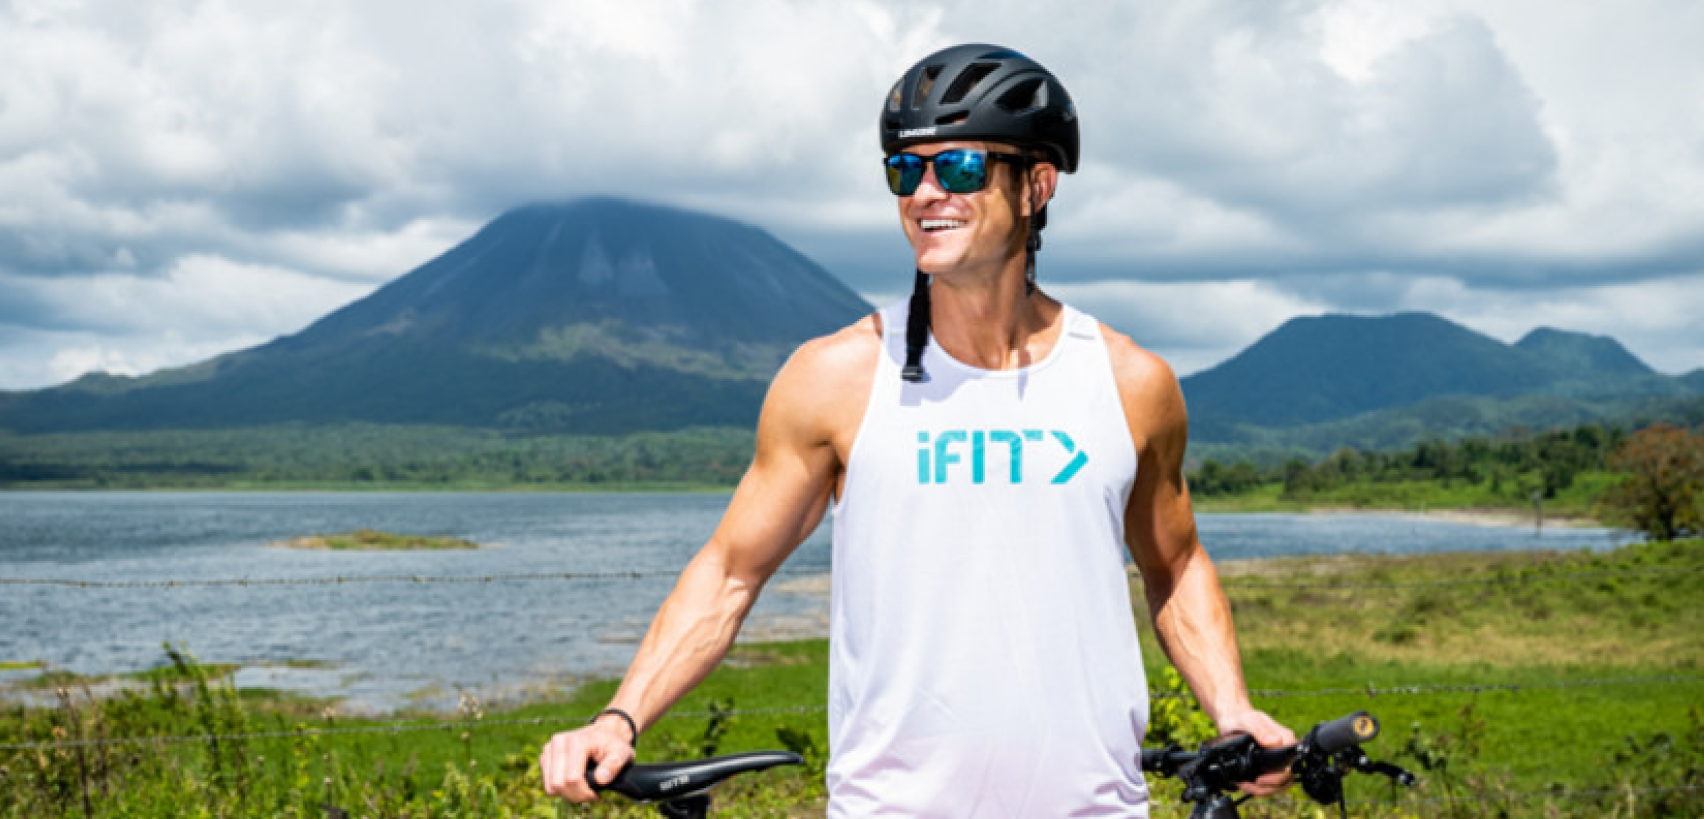 iFIT Costa Rica Beginner cycling workout series